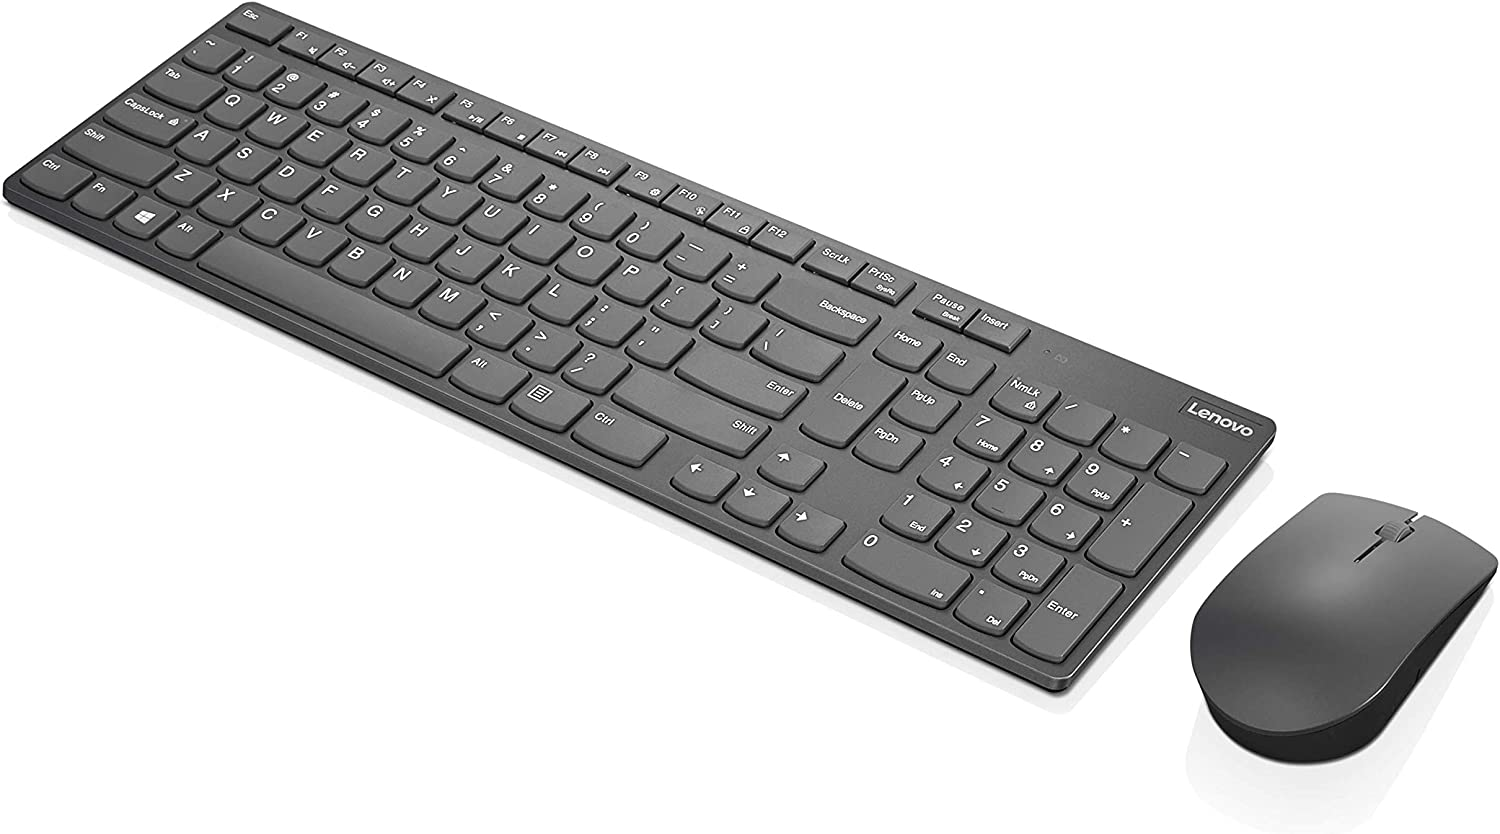 Lenovo Professional Ultraslim Combo Keyboard and Mouse, Wireless, Long Battery Life, Adjustable 3200 DPI Mouse, 2.4 GHz Via Shared Nano USB Receiver, GX30T11591, Iron Grey